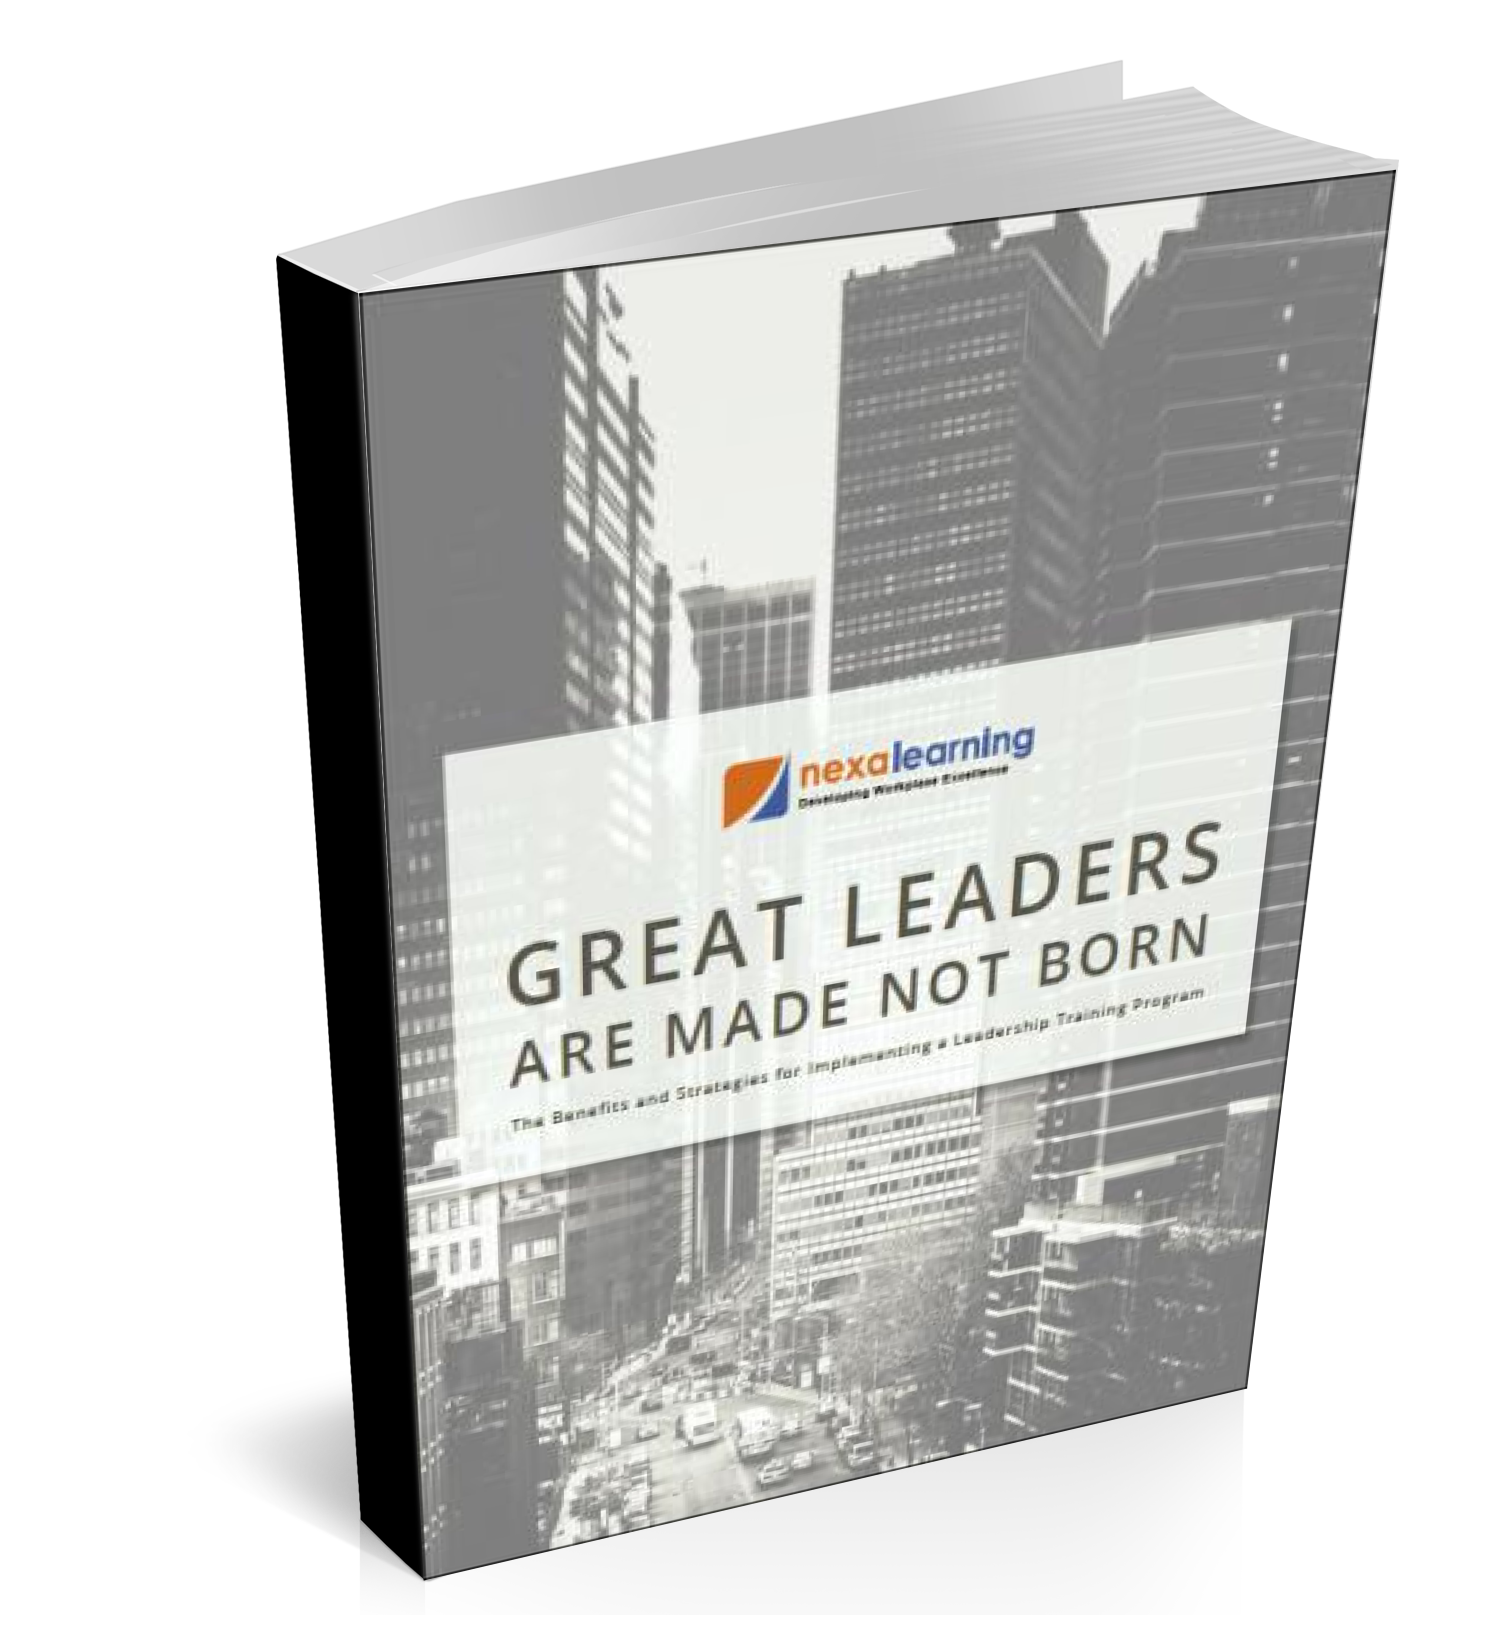 Great Leaders Are Made Not Born - NexaLearning